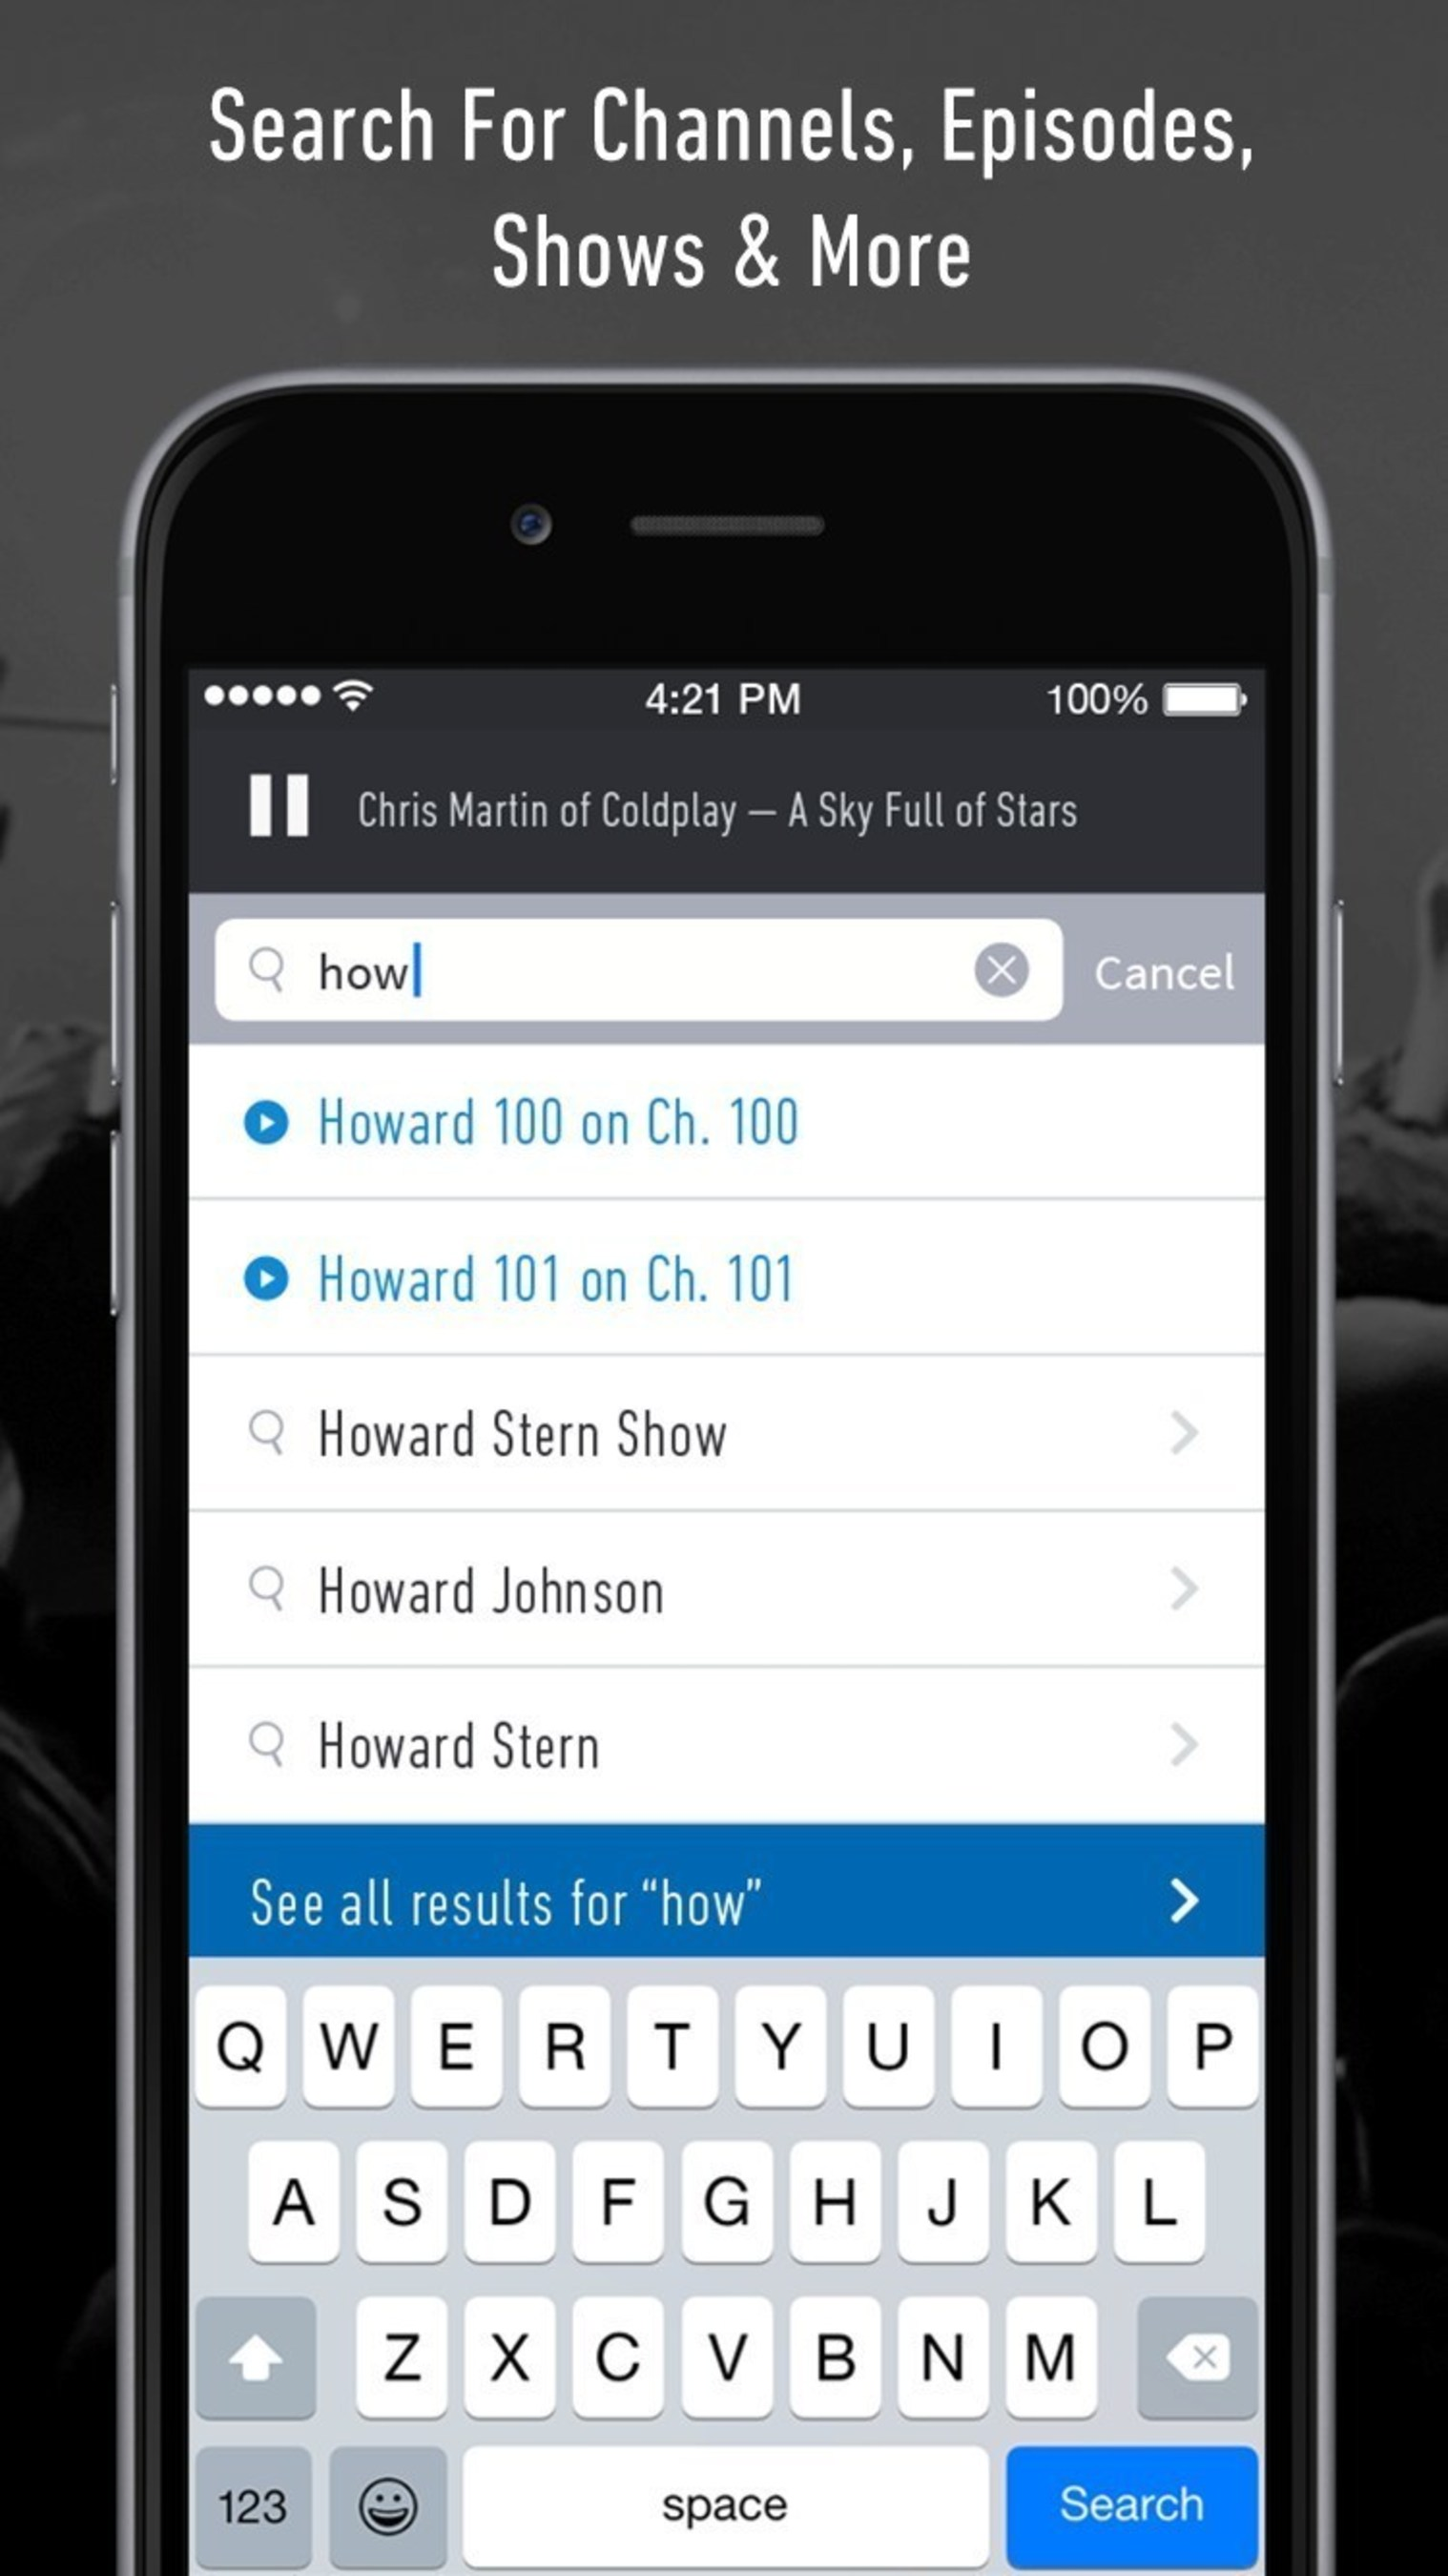 SiriusXM: Search for Channels, Episodes, Shows, and More